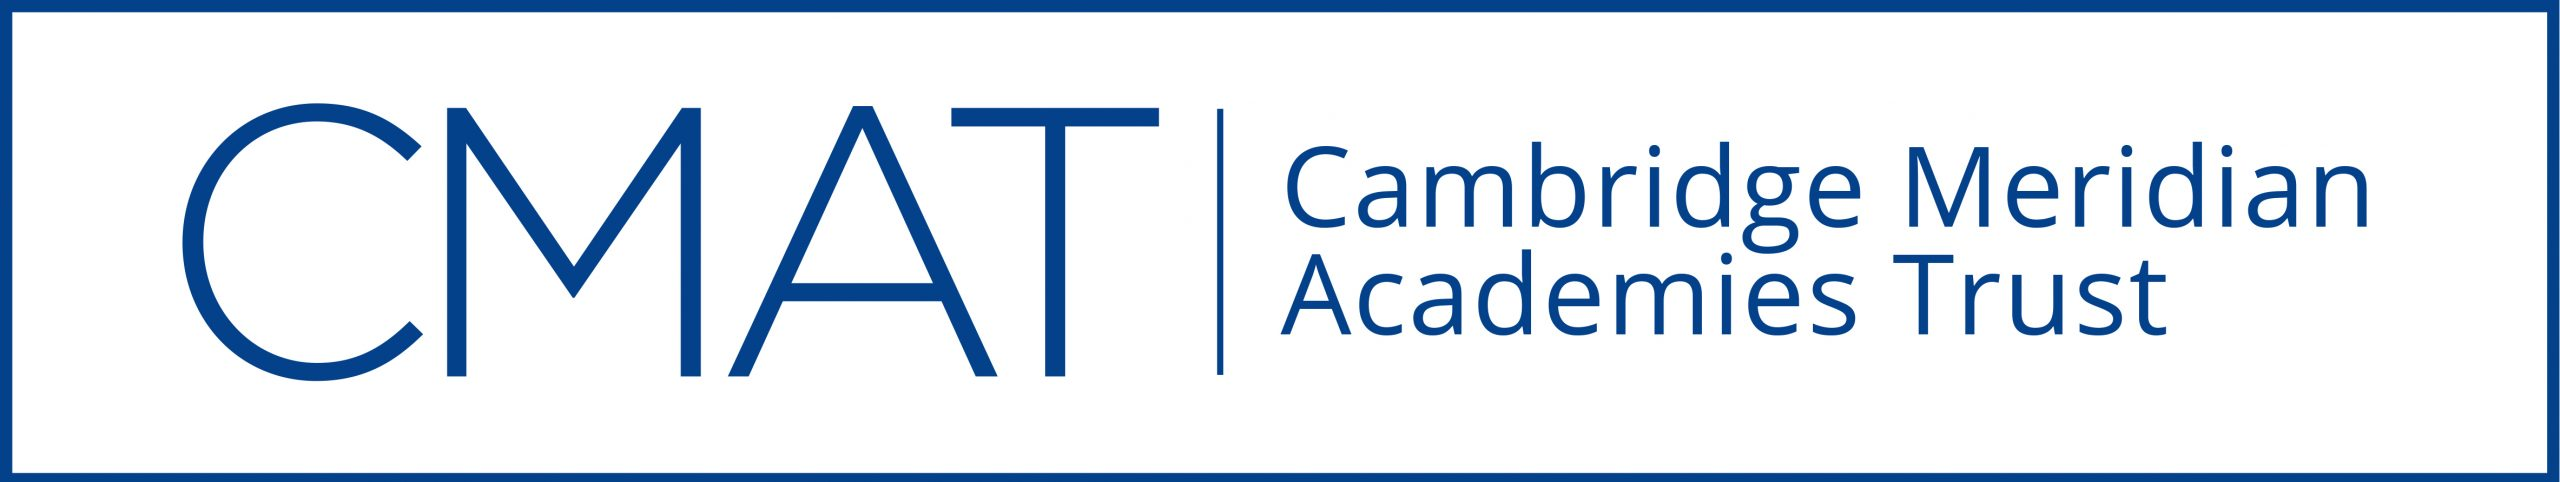 The Cambridge Meridian Academies Trust